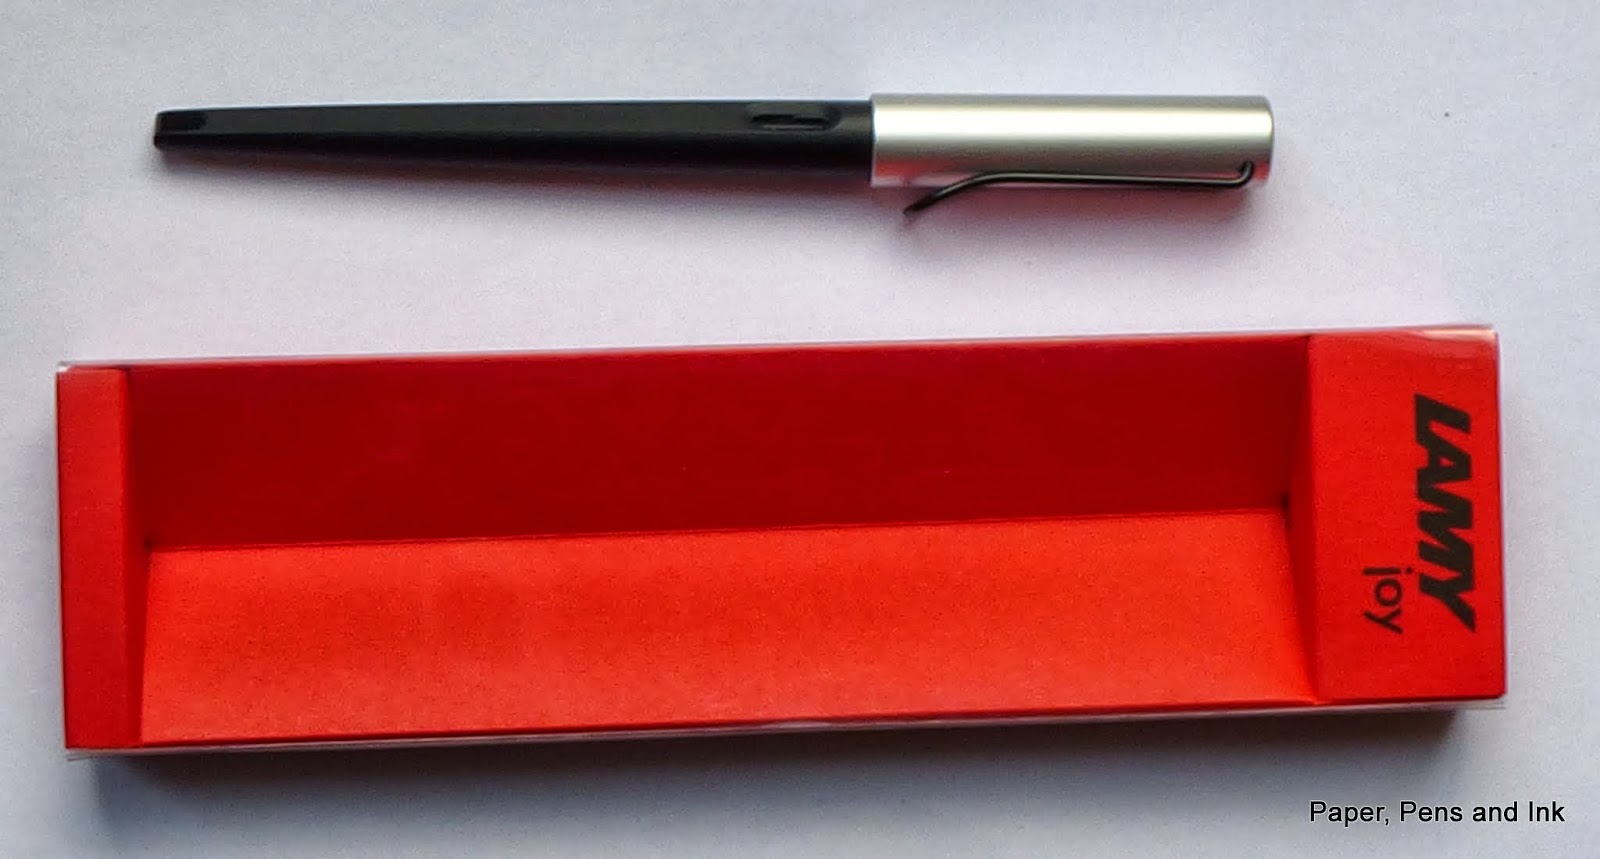 Paper Pens Ink: Review of Lamy Joy Calligraphy Fountain Pen